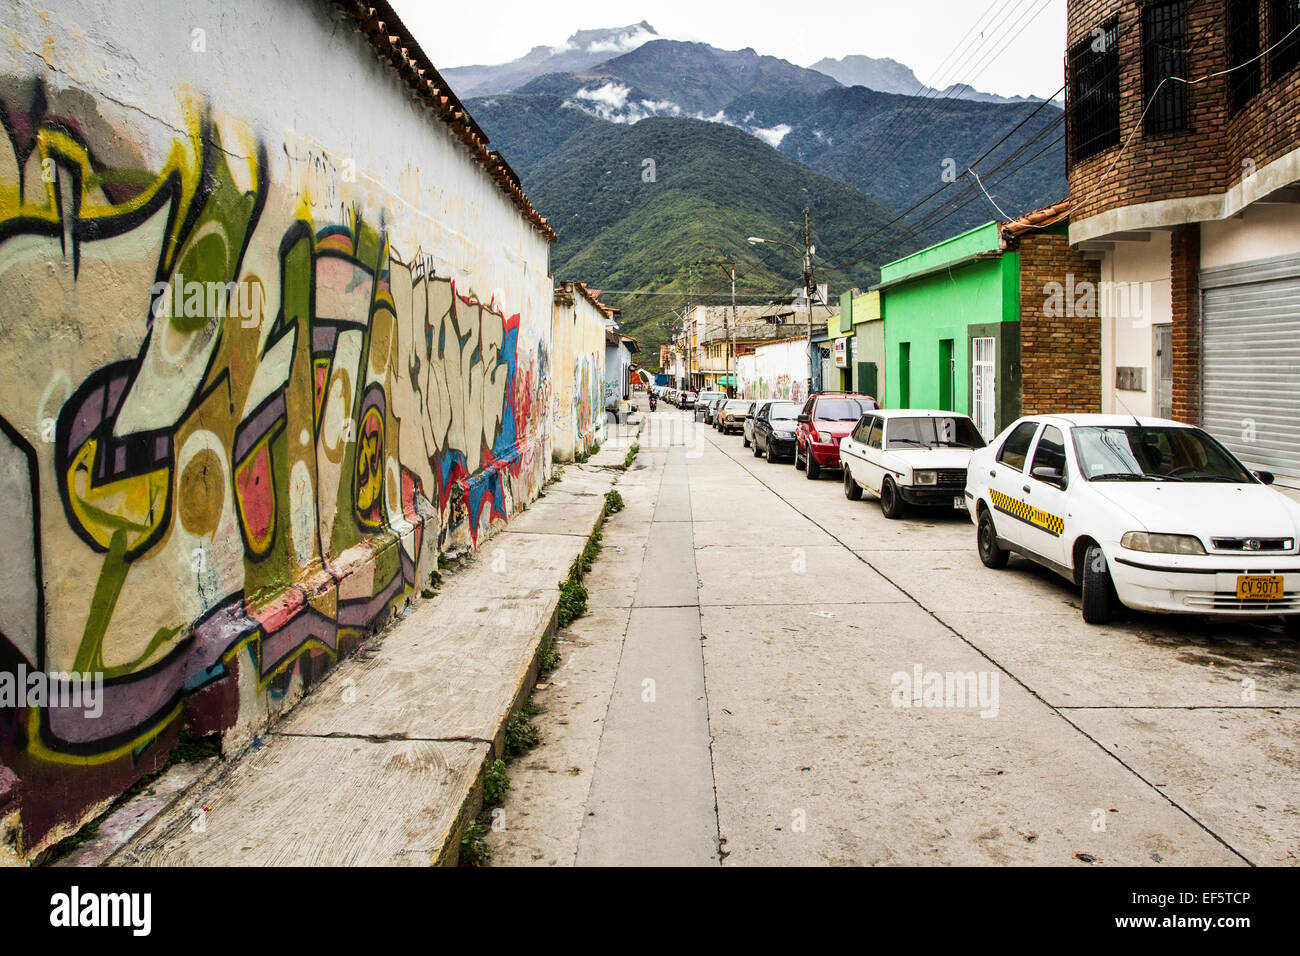 Street in downtown. Merida, Merida, Venezuela. - Stock Image